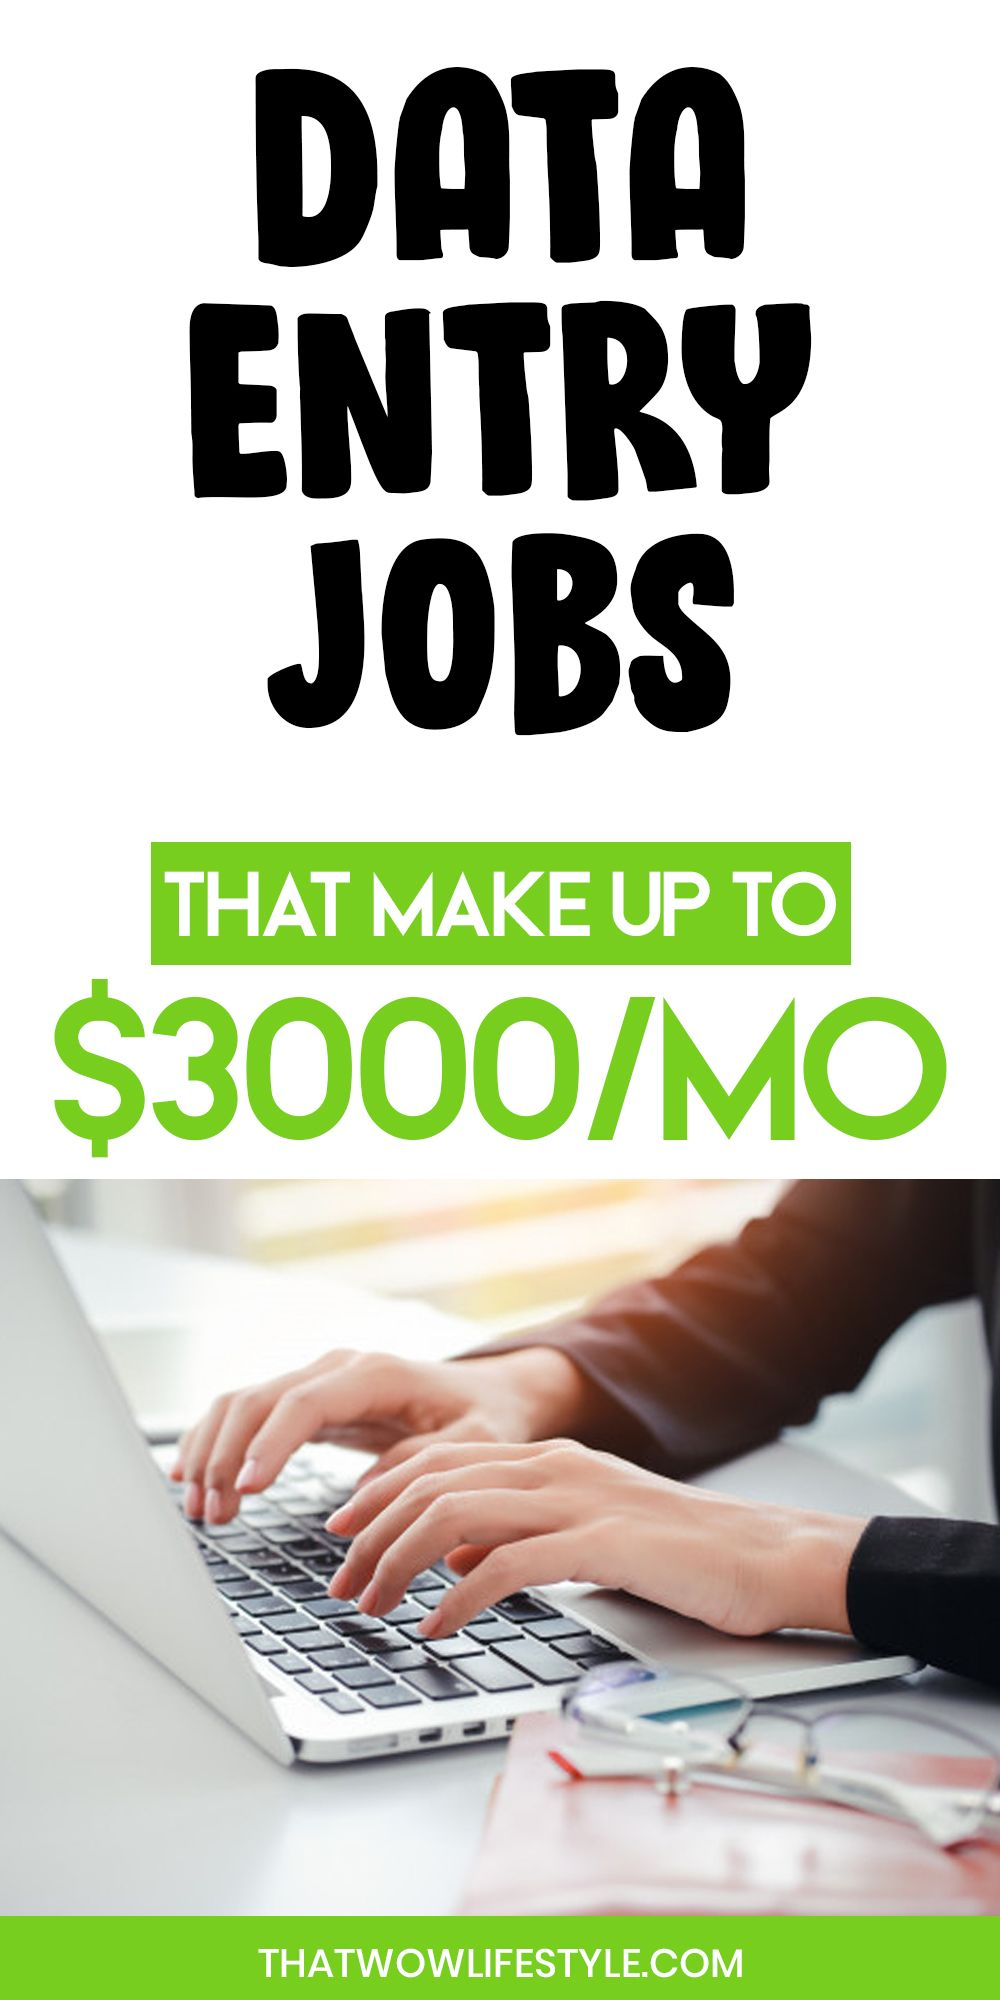 Best data entry jobs to earn money online from home in